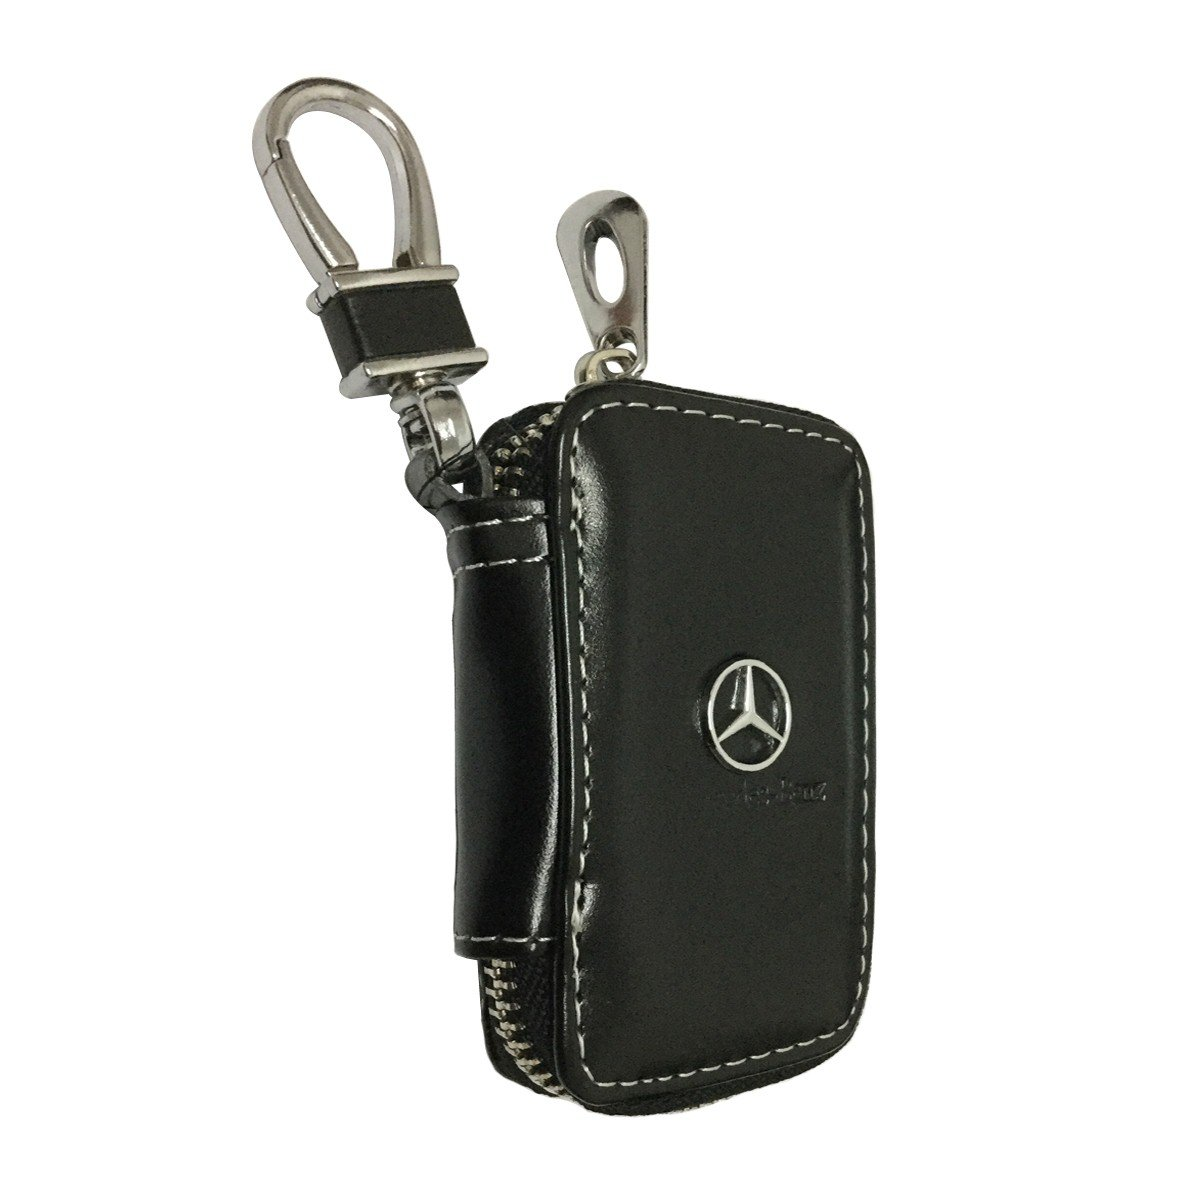 YIKA New Car Key Chain Bag Genuine Leather AMG Car Smart Keychain Keyring Wallet Zipper Case Auto Remote Key Fob for Mercedes Benz